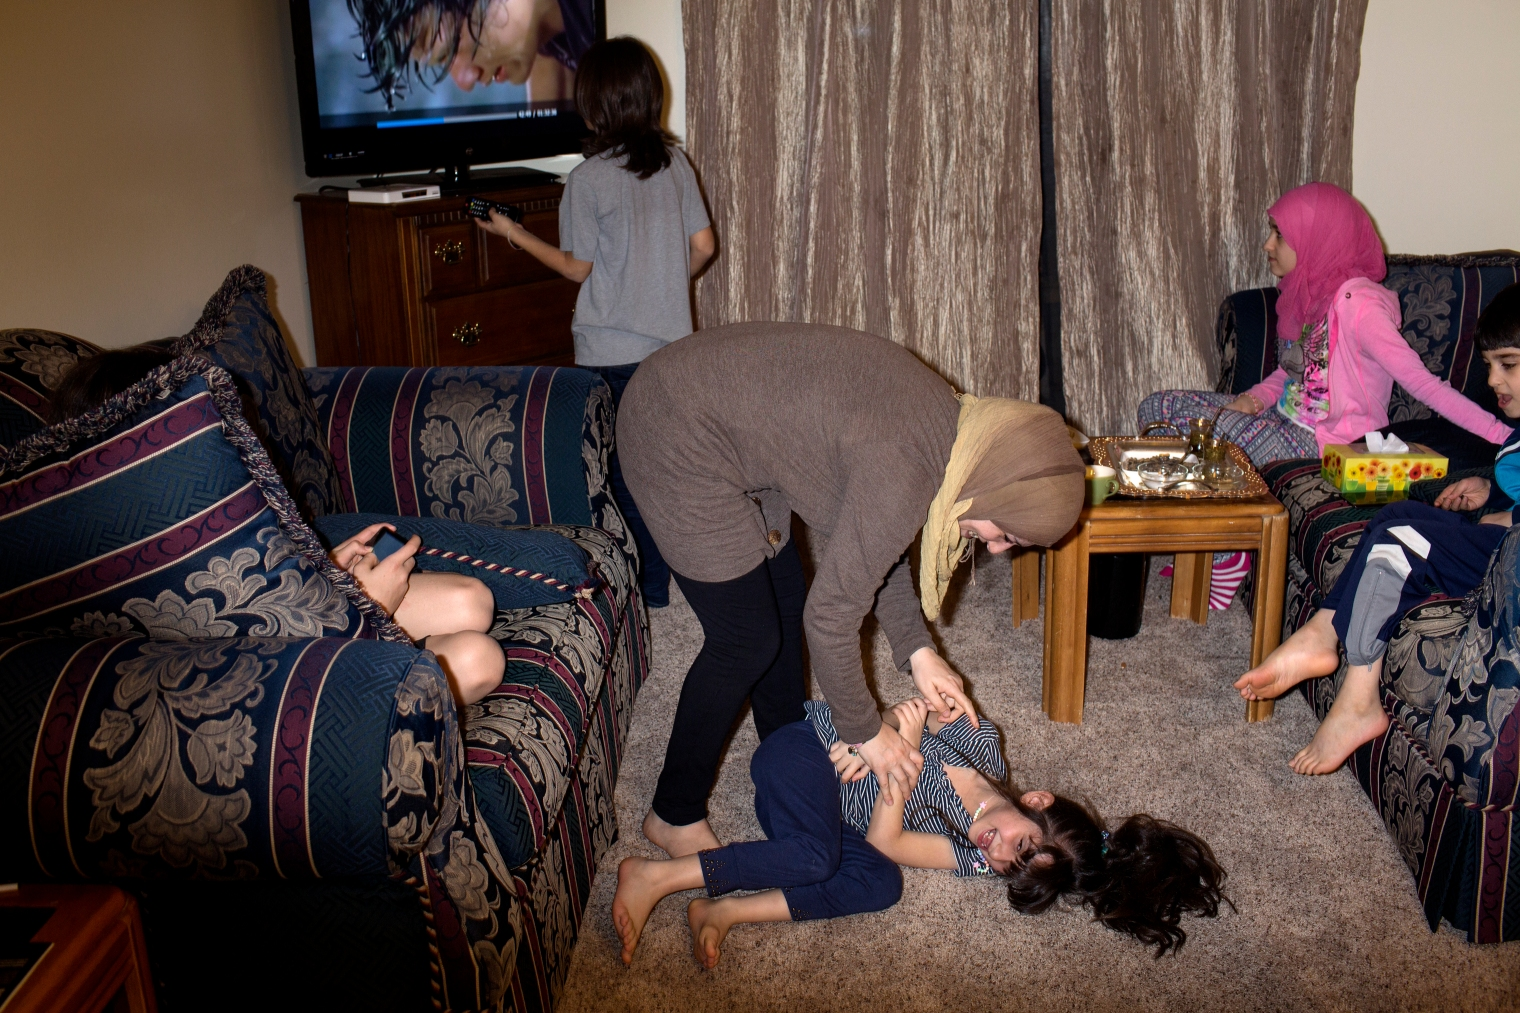 Ghazweh Aljabooli plays with her daughter Hala at the family's new apartment in West Des Moines, Iowa.